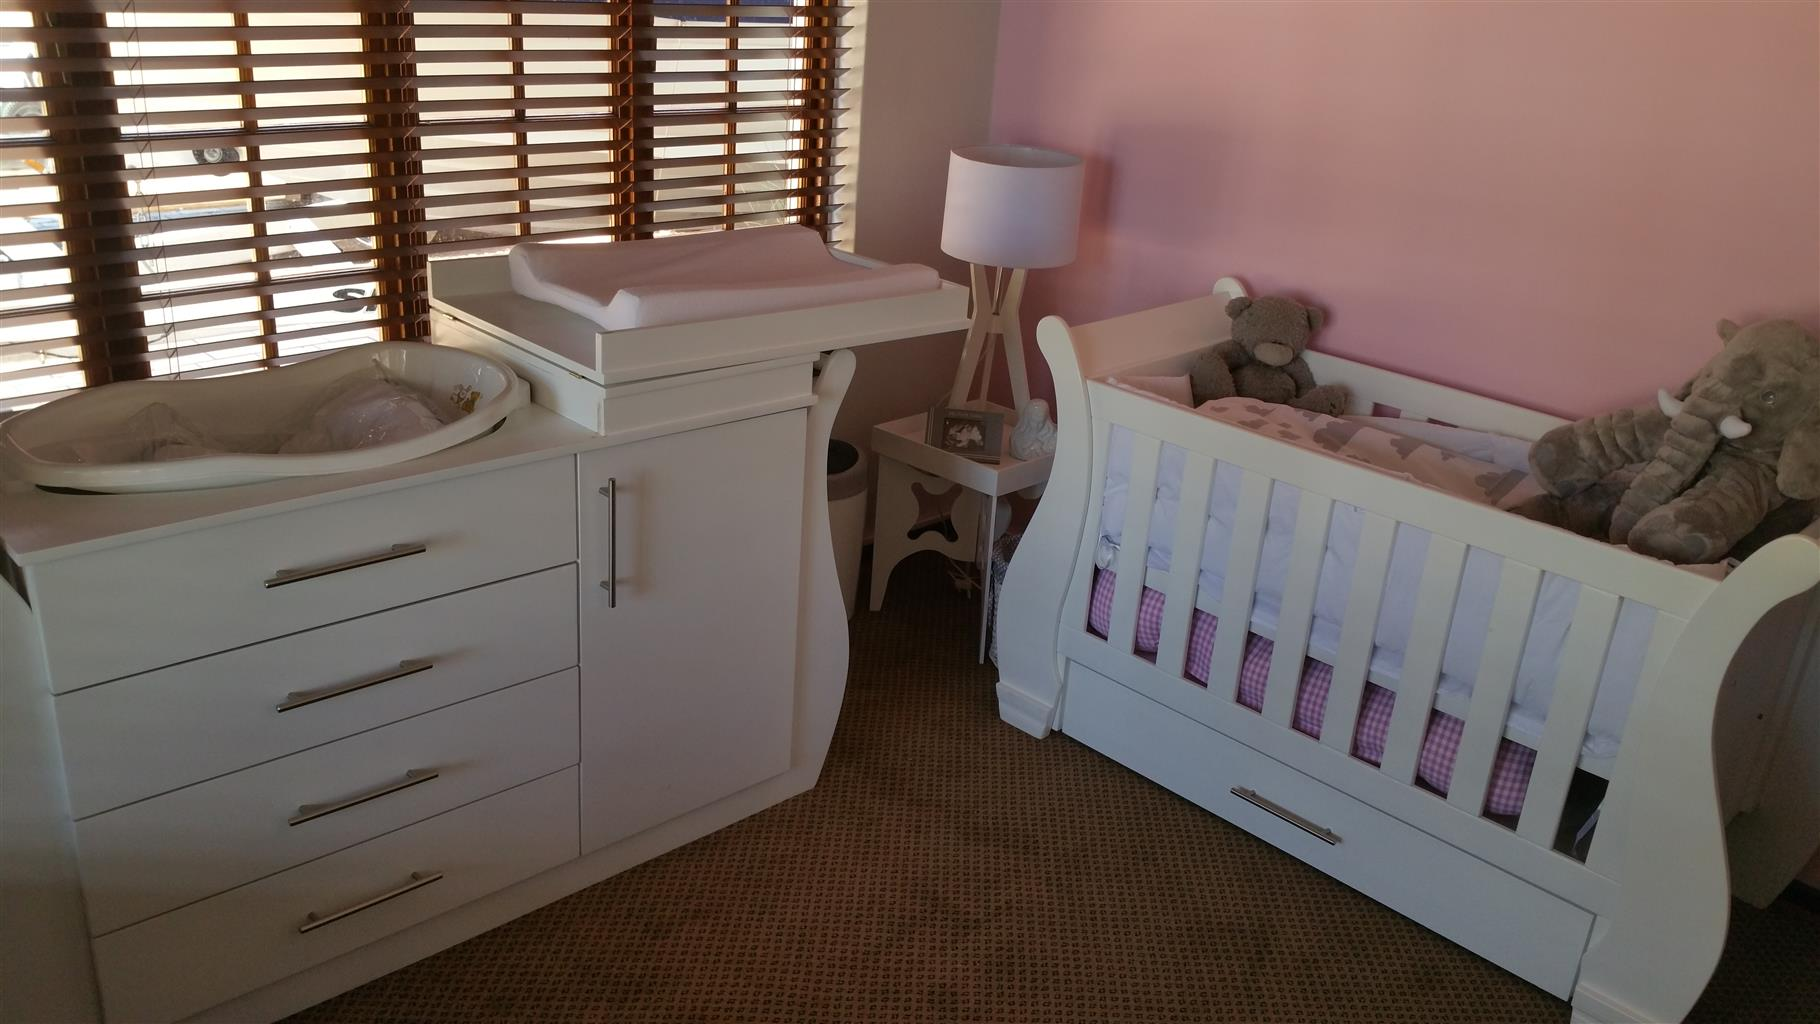 Used, Lily Baby Cot and Compactum-R 5999,00 for sale  Johannesburg - Randburg